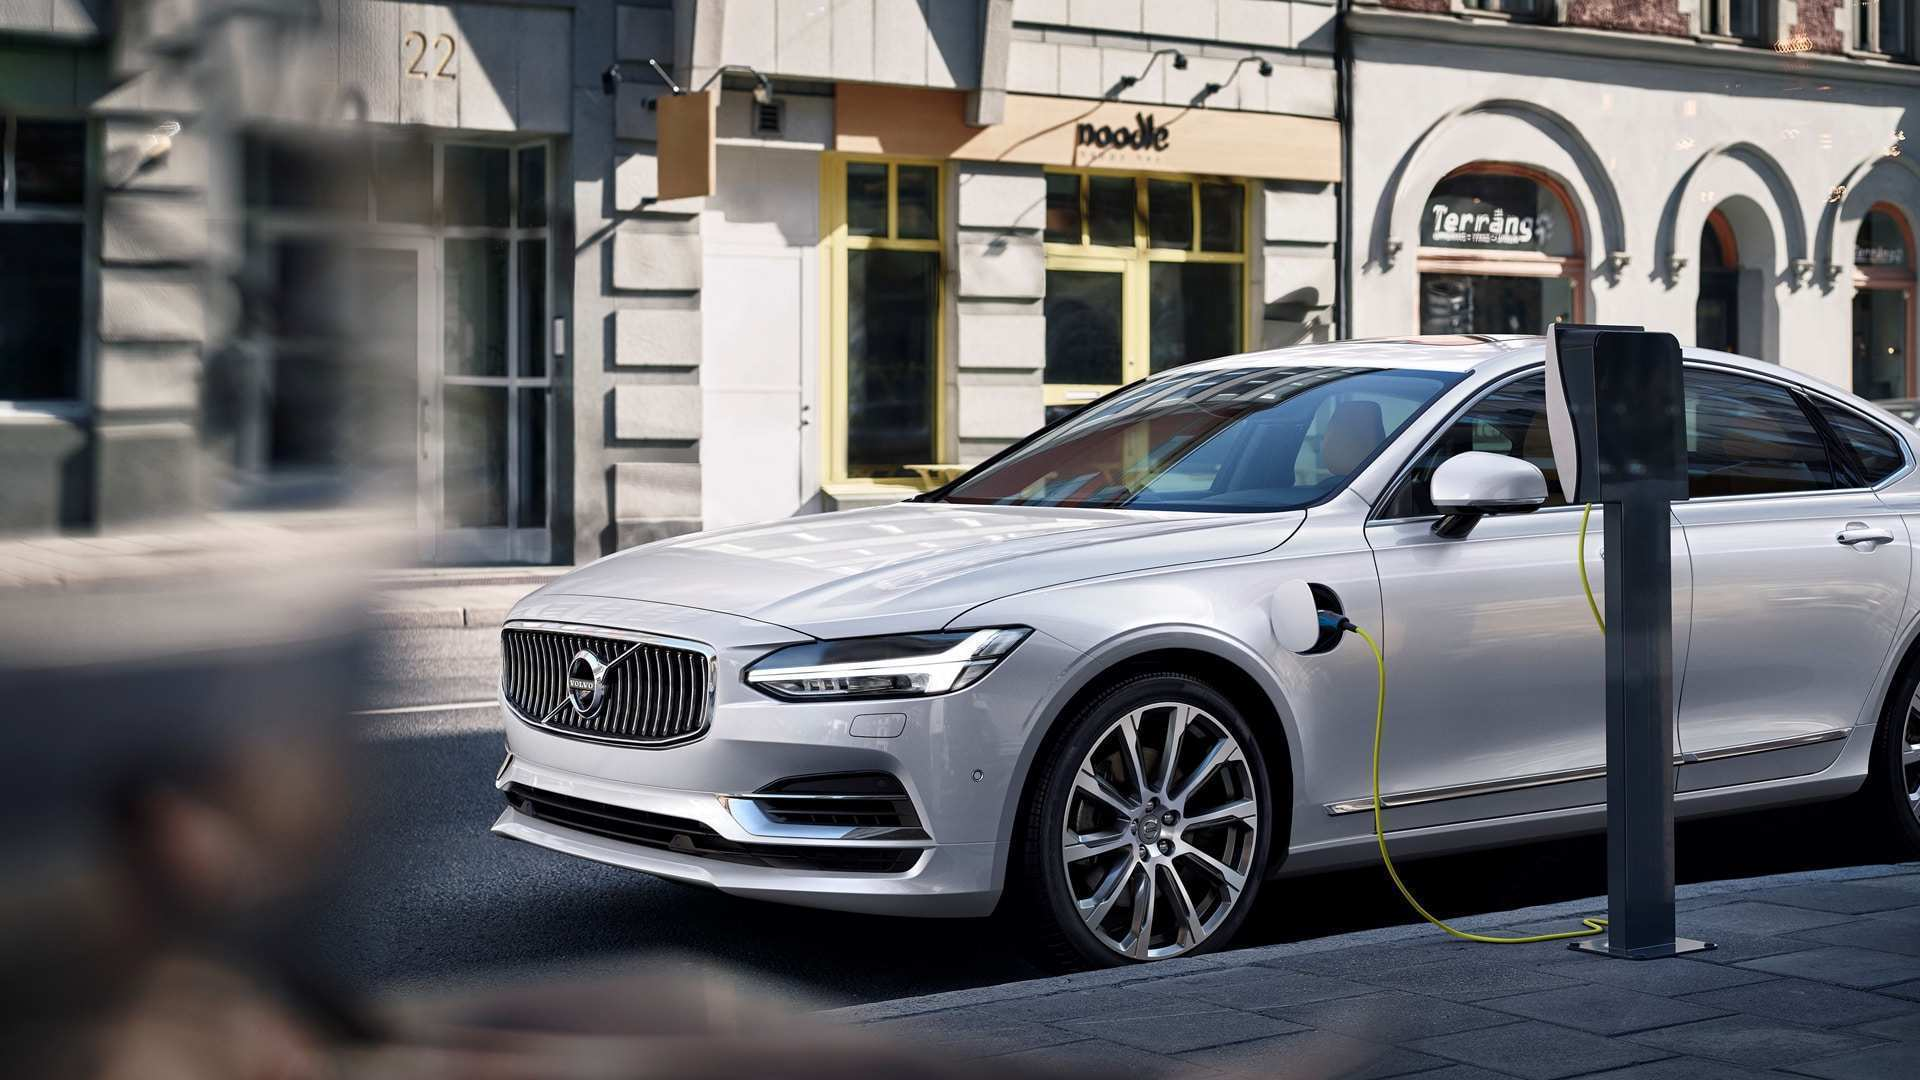 99 Best Review Volvo Going Electric By 2020 Images for Volvo Going Electric By 2020